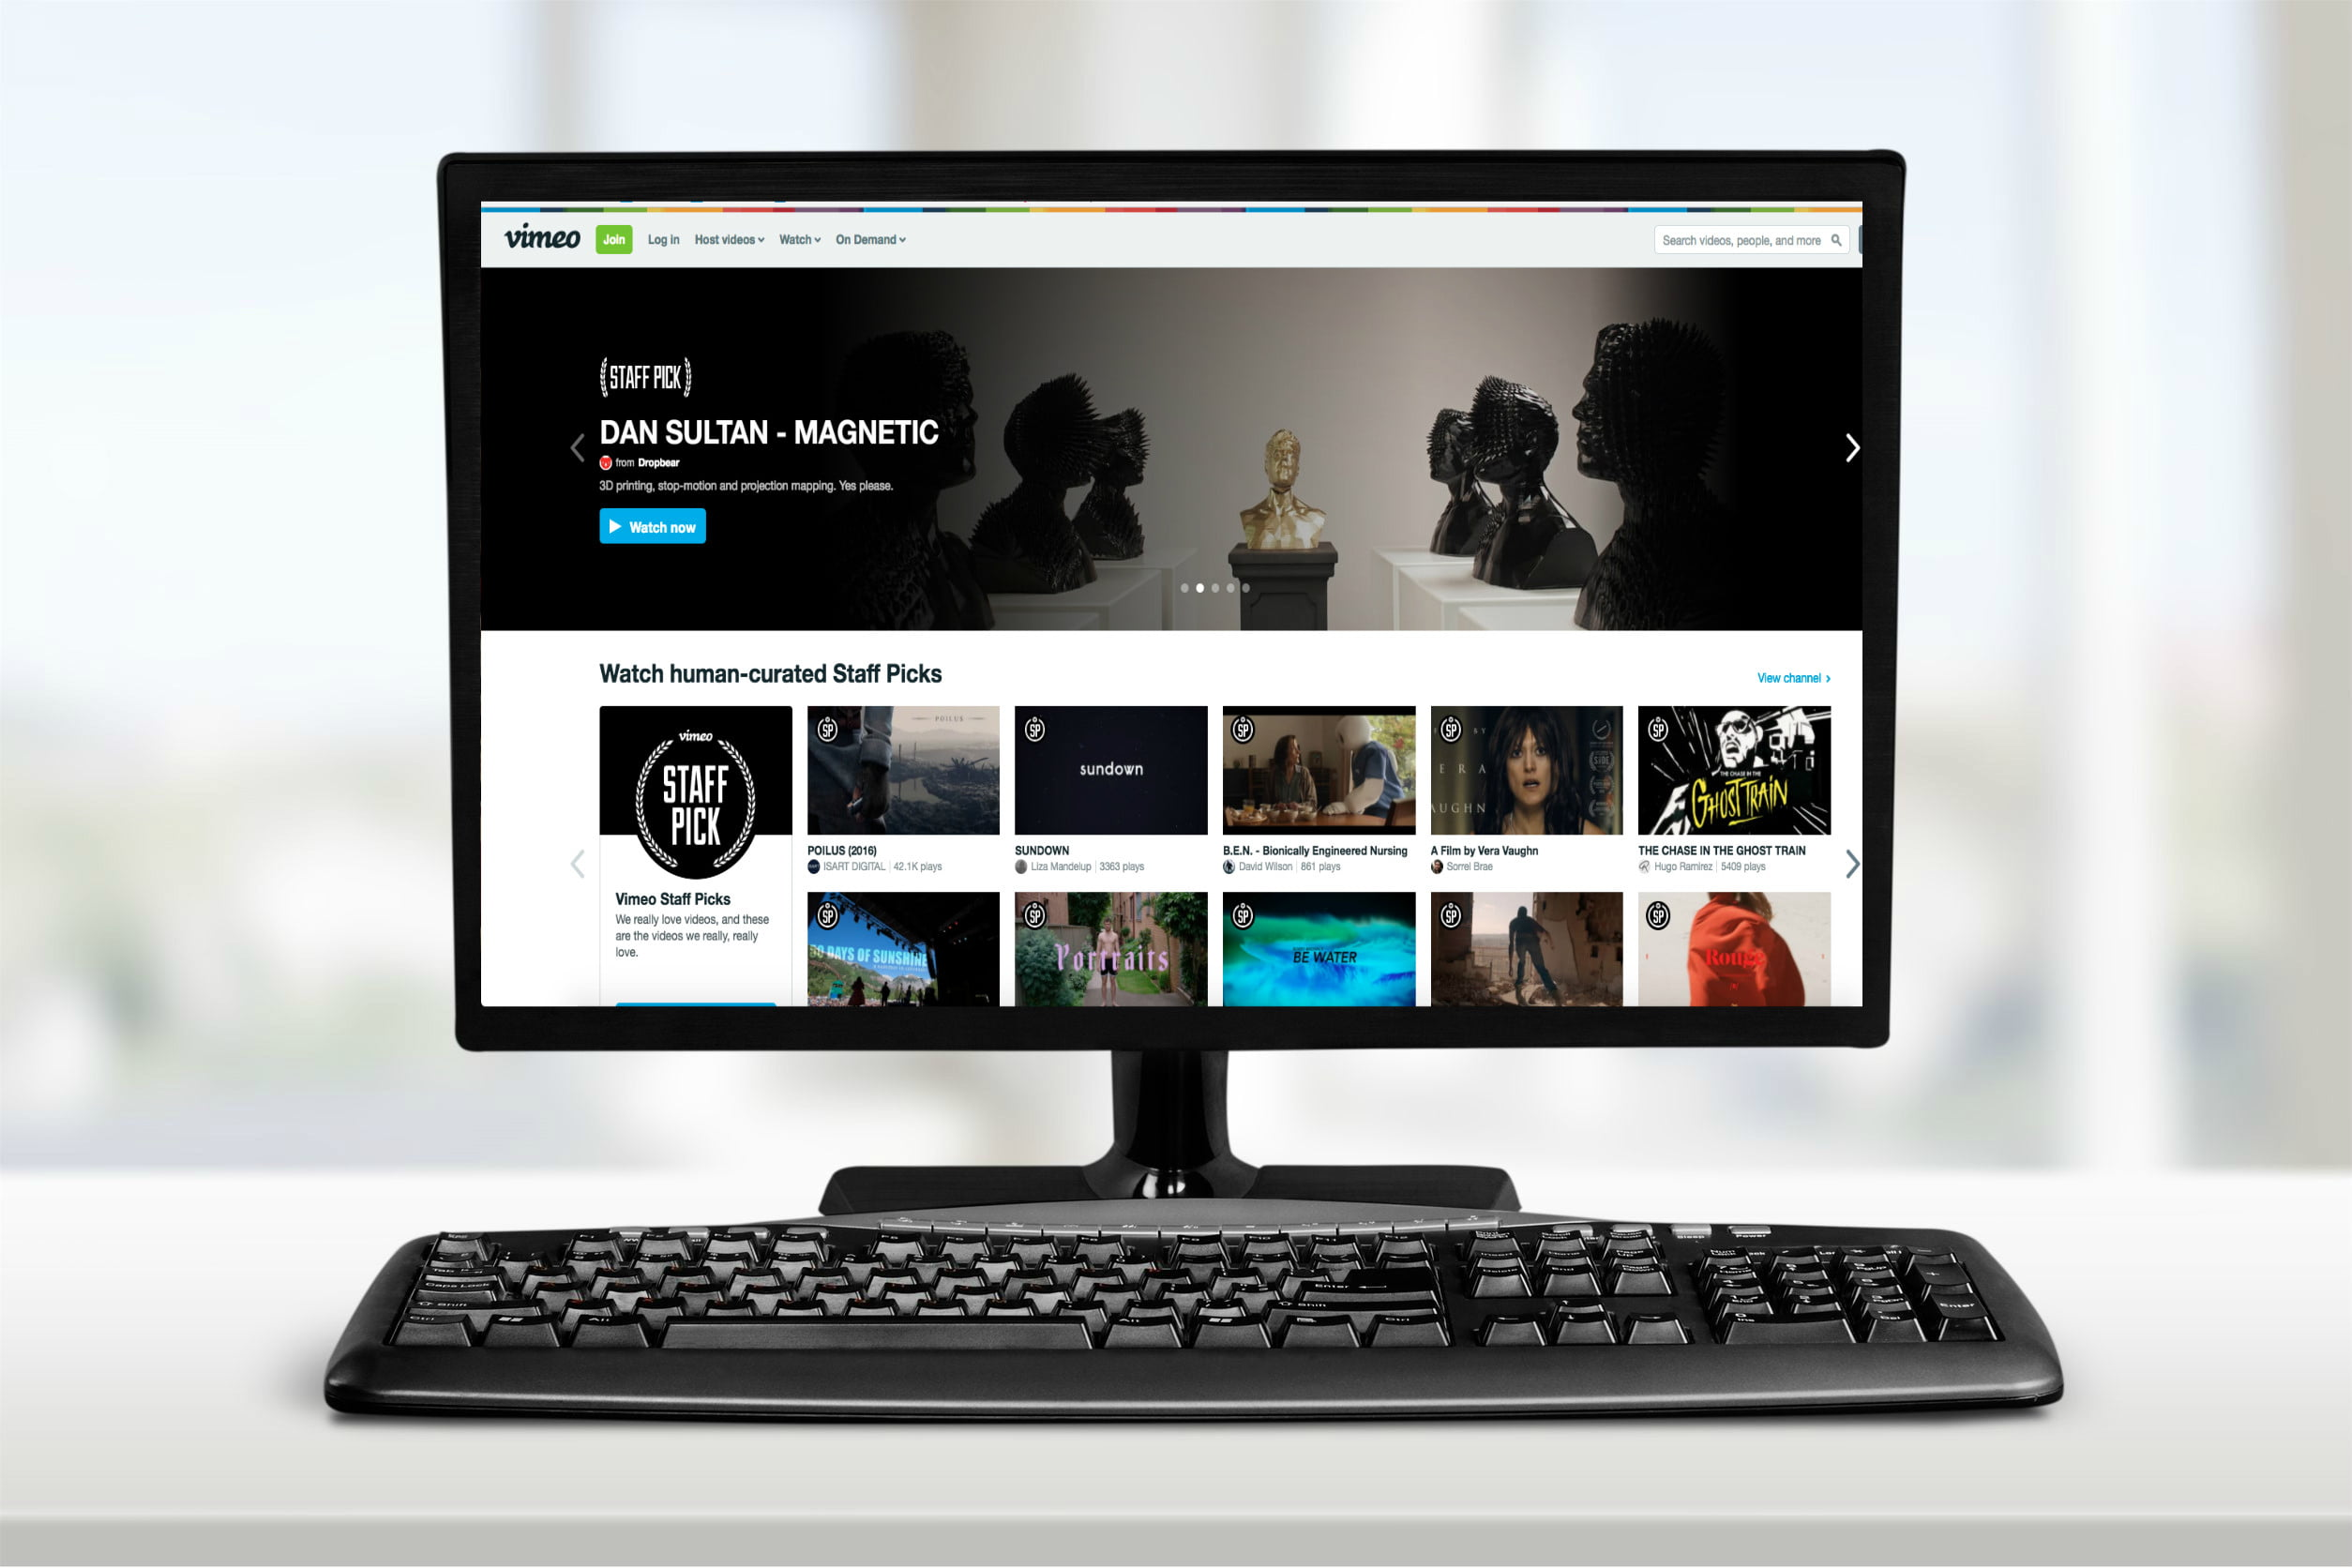 How to Download Vimeo Videos | Digital Trends